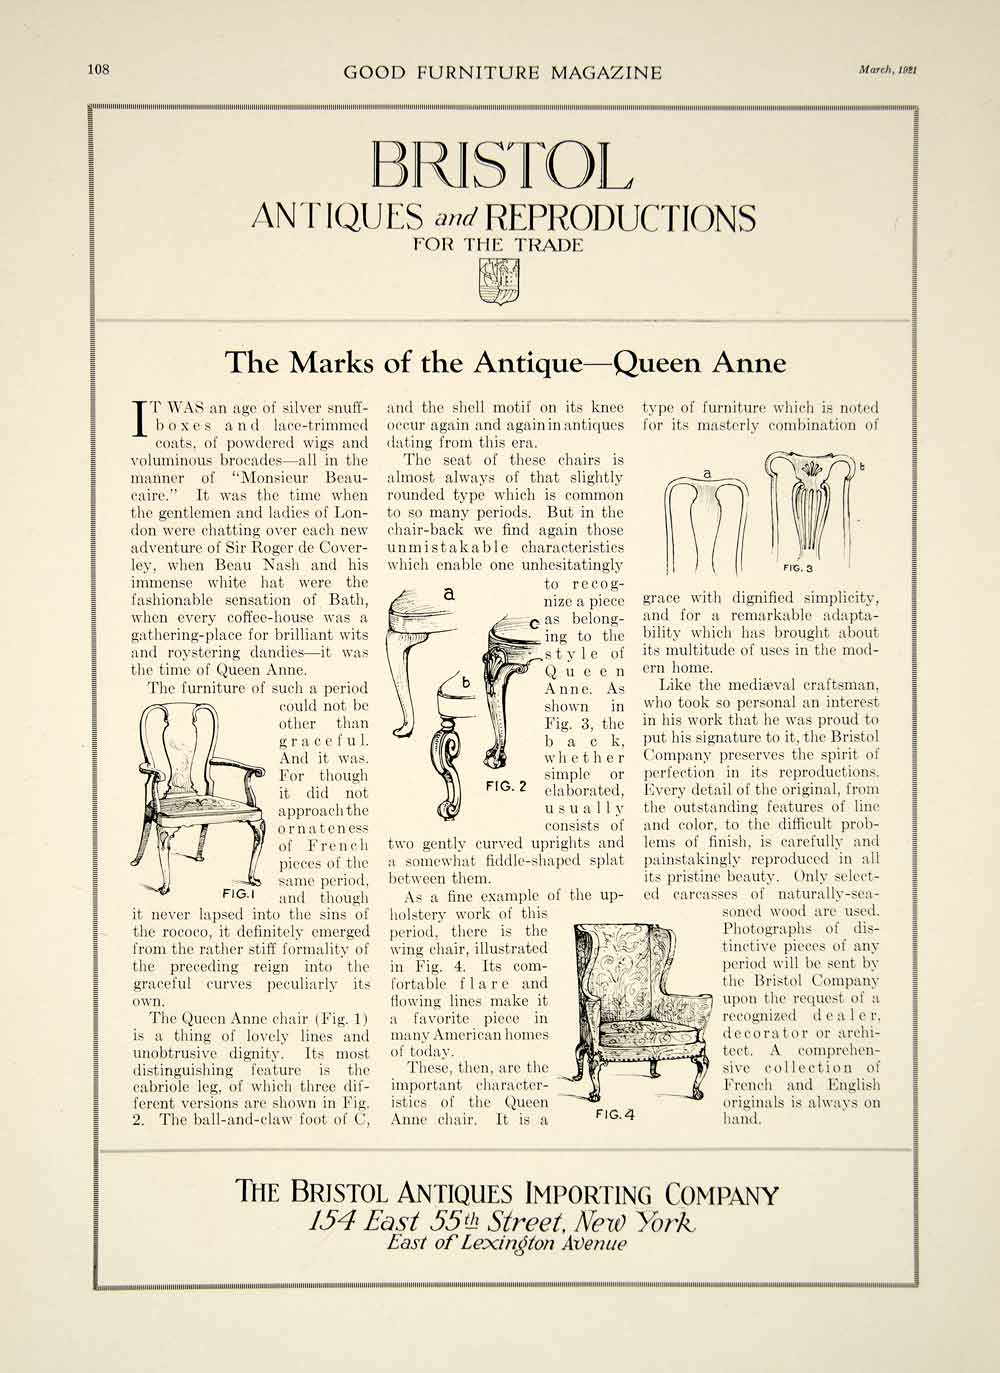 1921 Ad Bristol Antiques Queen Anne Furniture Wing Chair Characteristics GF5